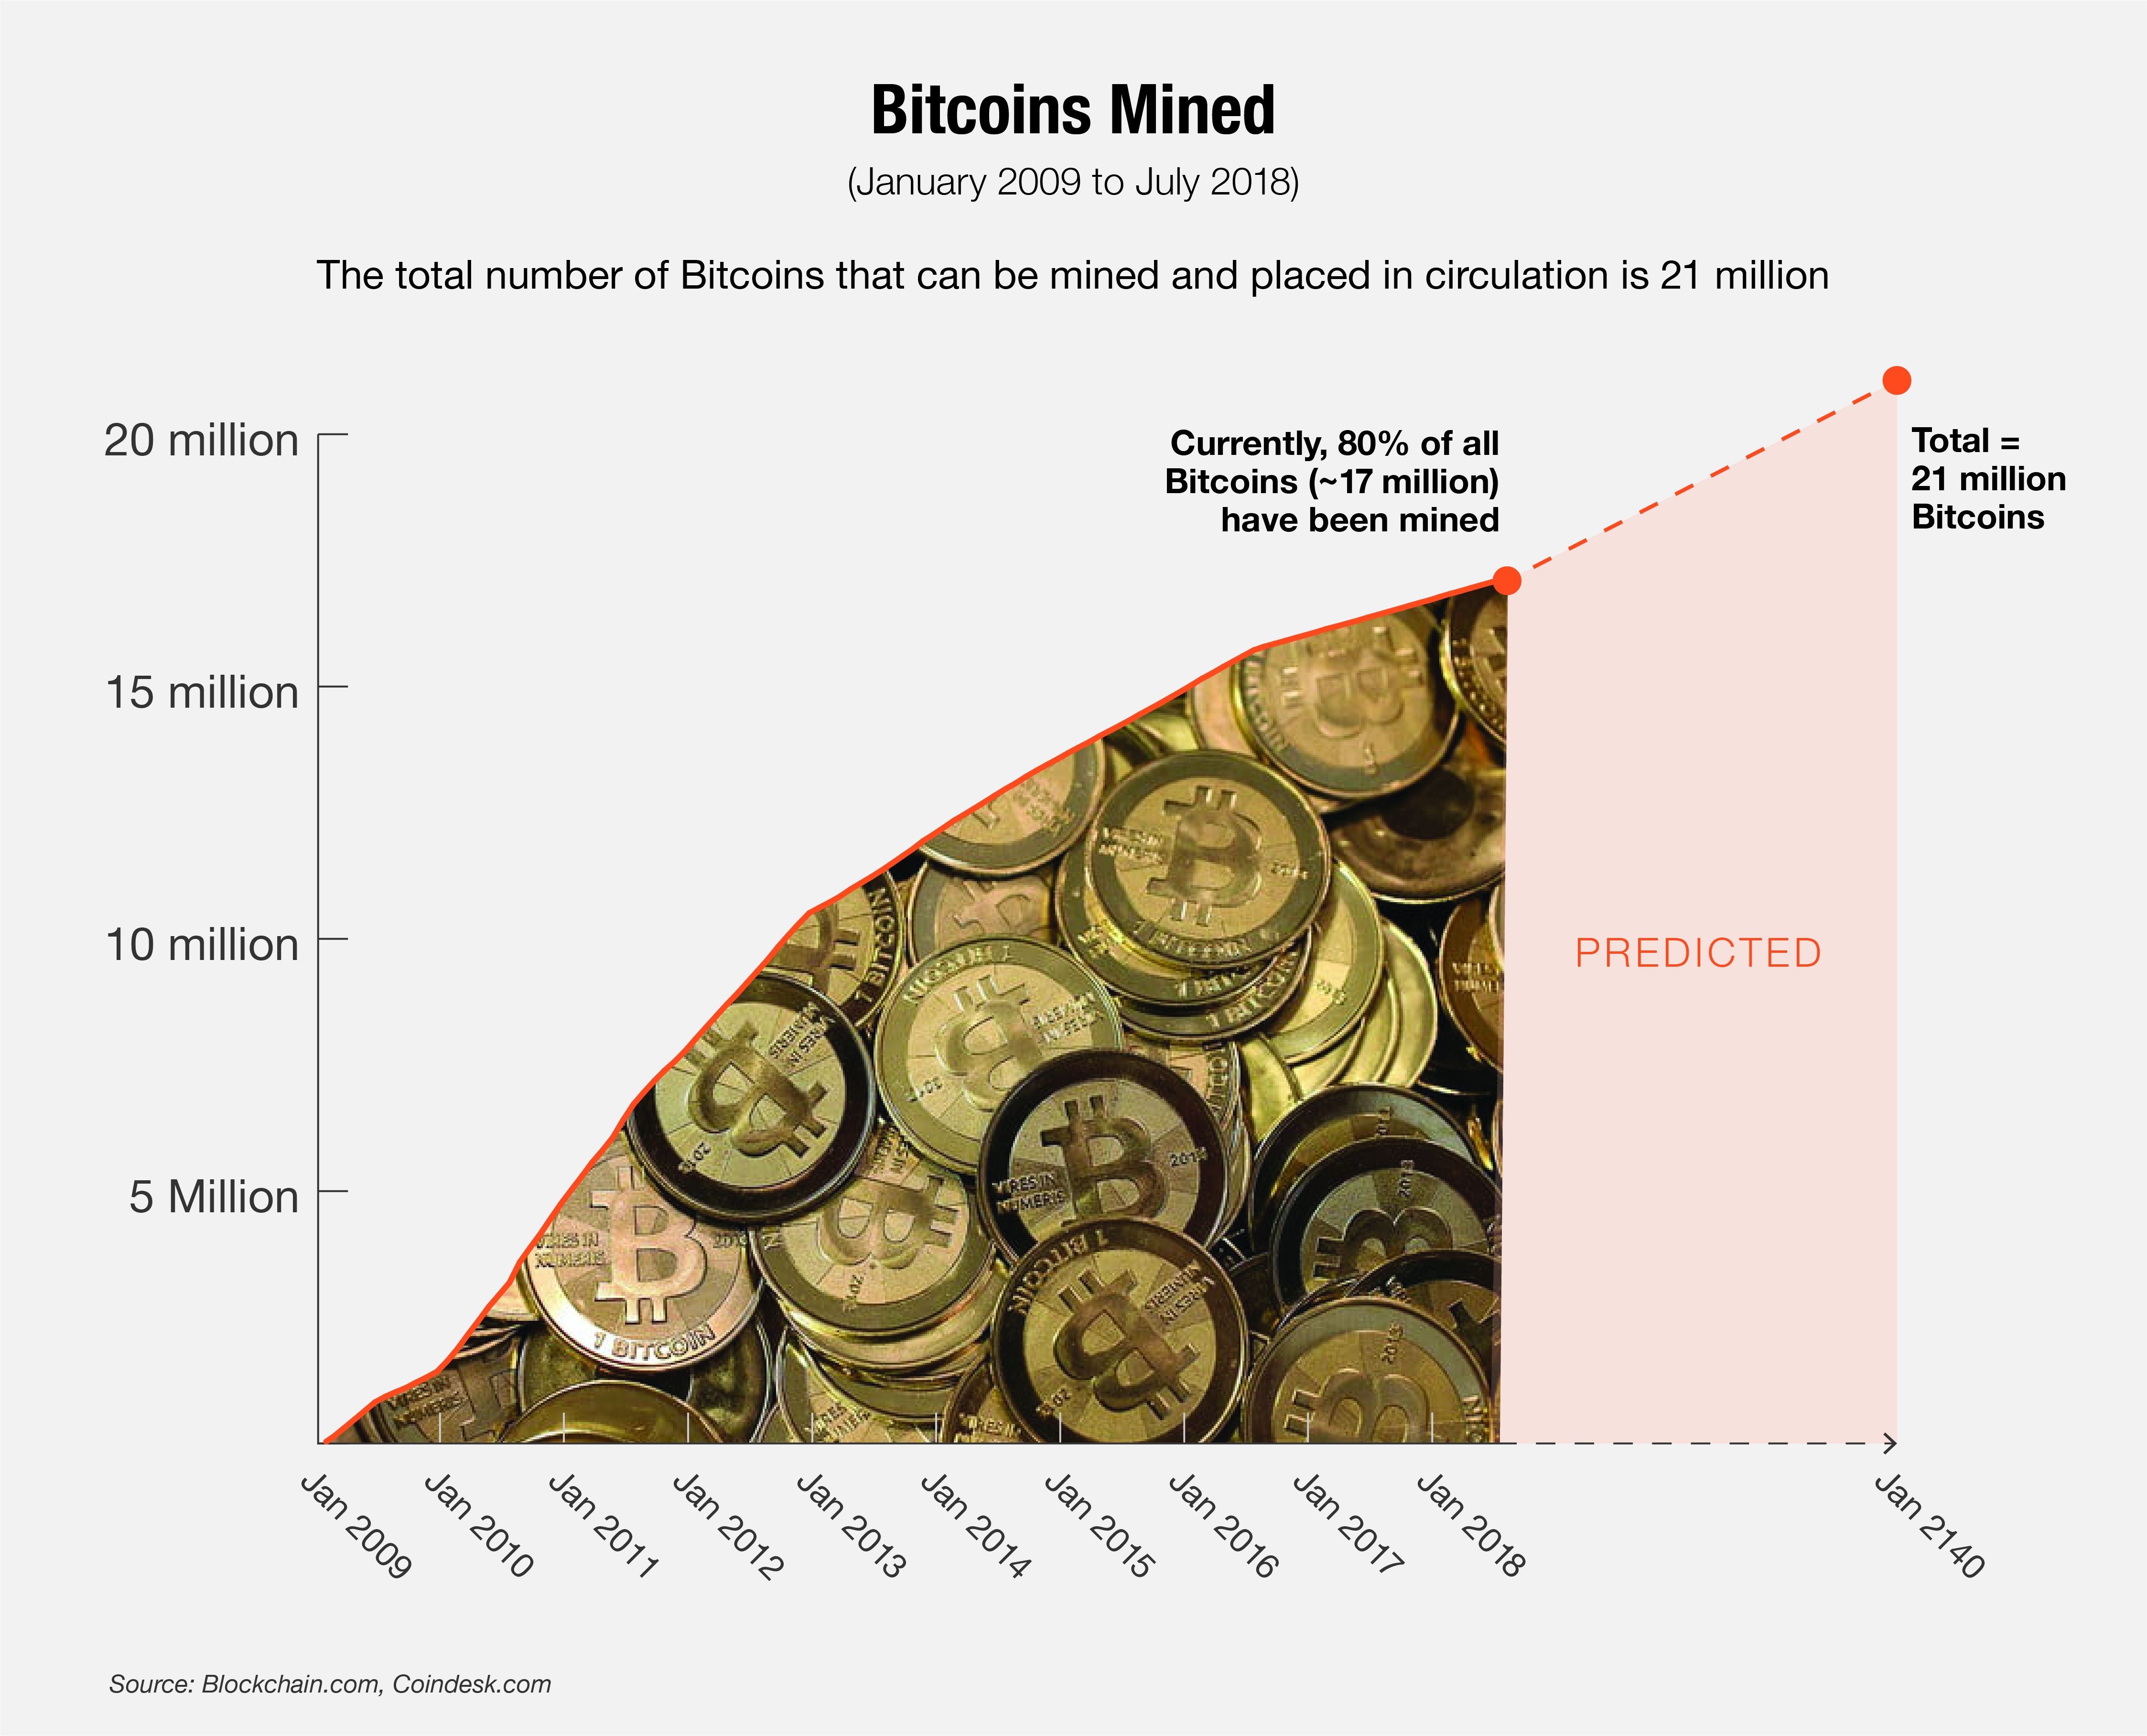 Number of Bitcoins Mined